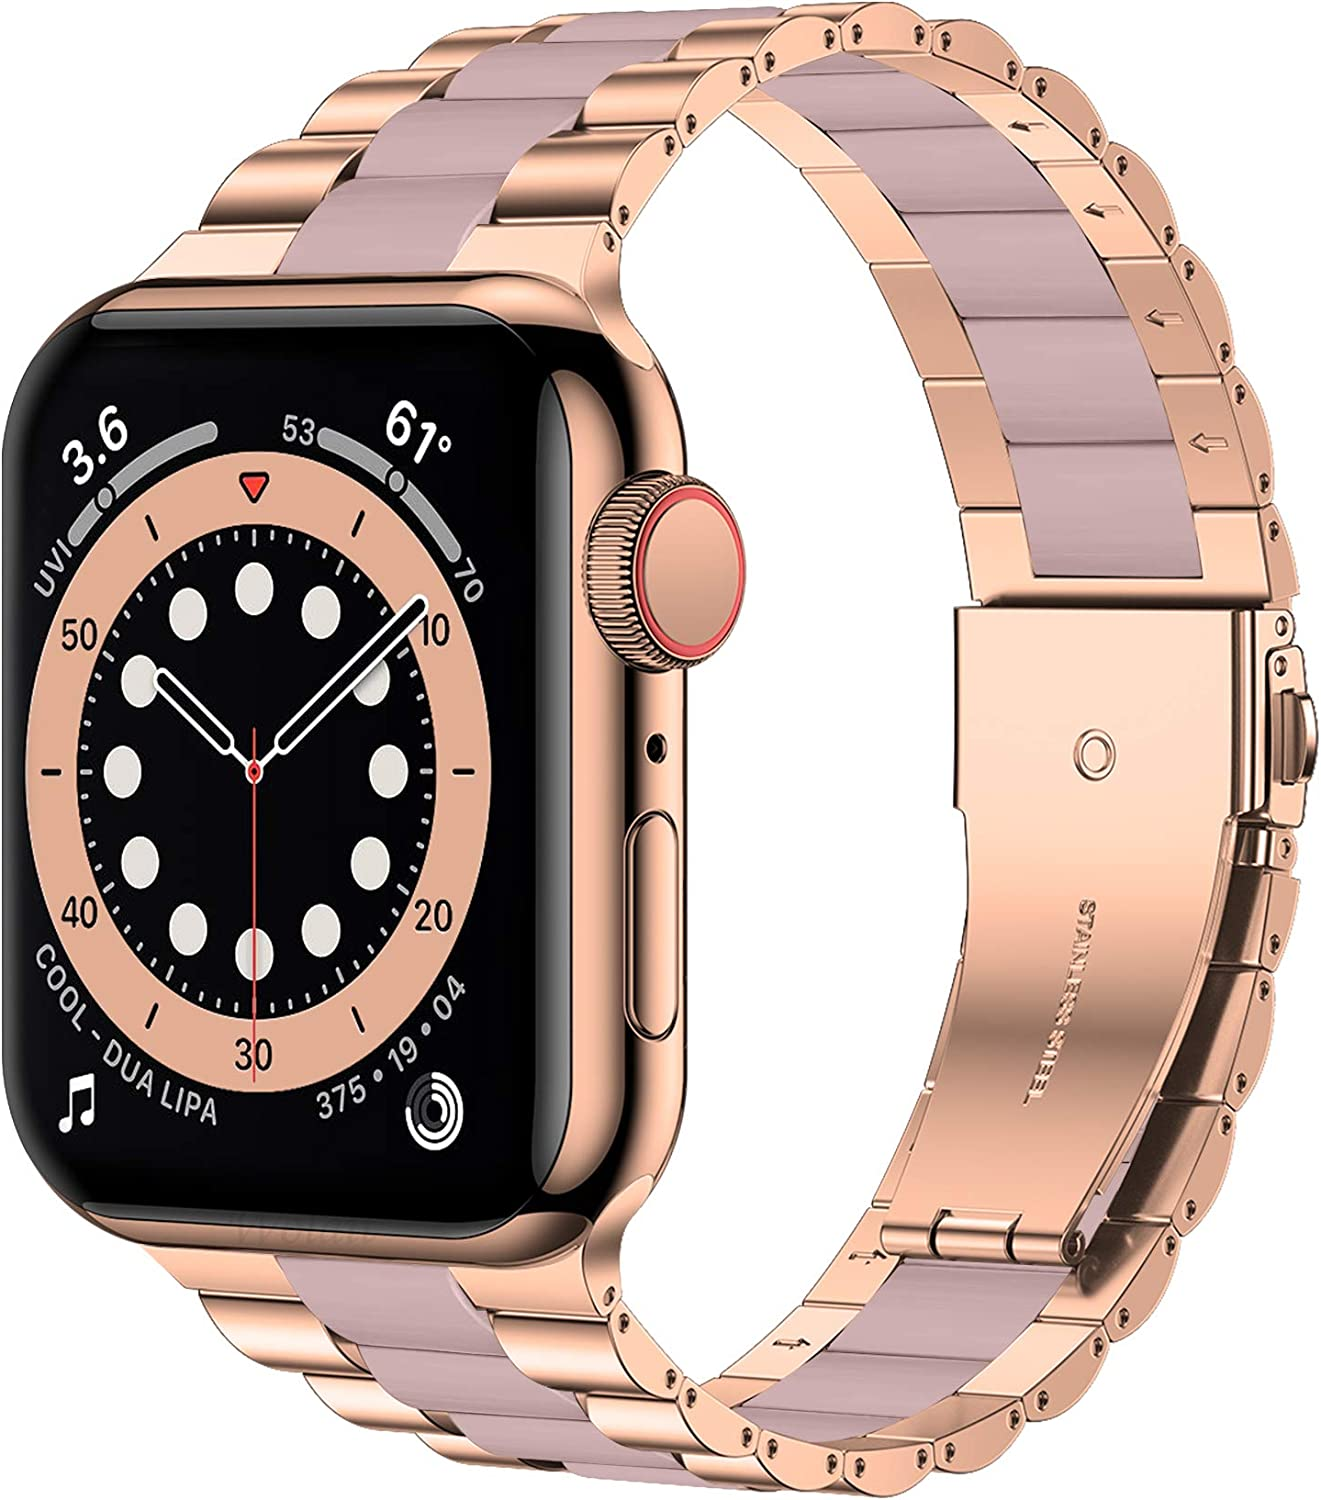 Wolait Compatible with Resin Apple Watch Band 38mm 40mm, Upgraded Fashion Light Stainless Steel Strap Wristband for iWatch SE/Series 6/5/4/3/2/1 Men Women,Rose Gold/Pink, 38mm/40mm